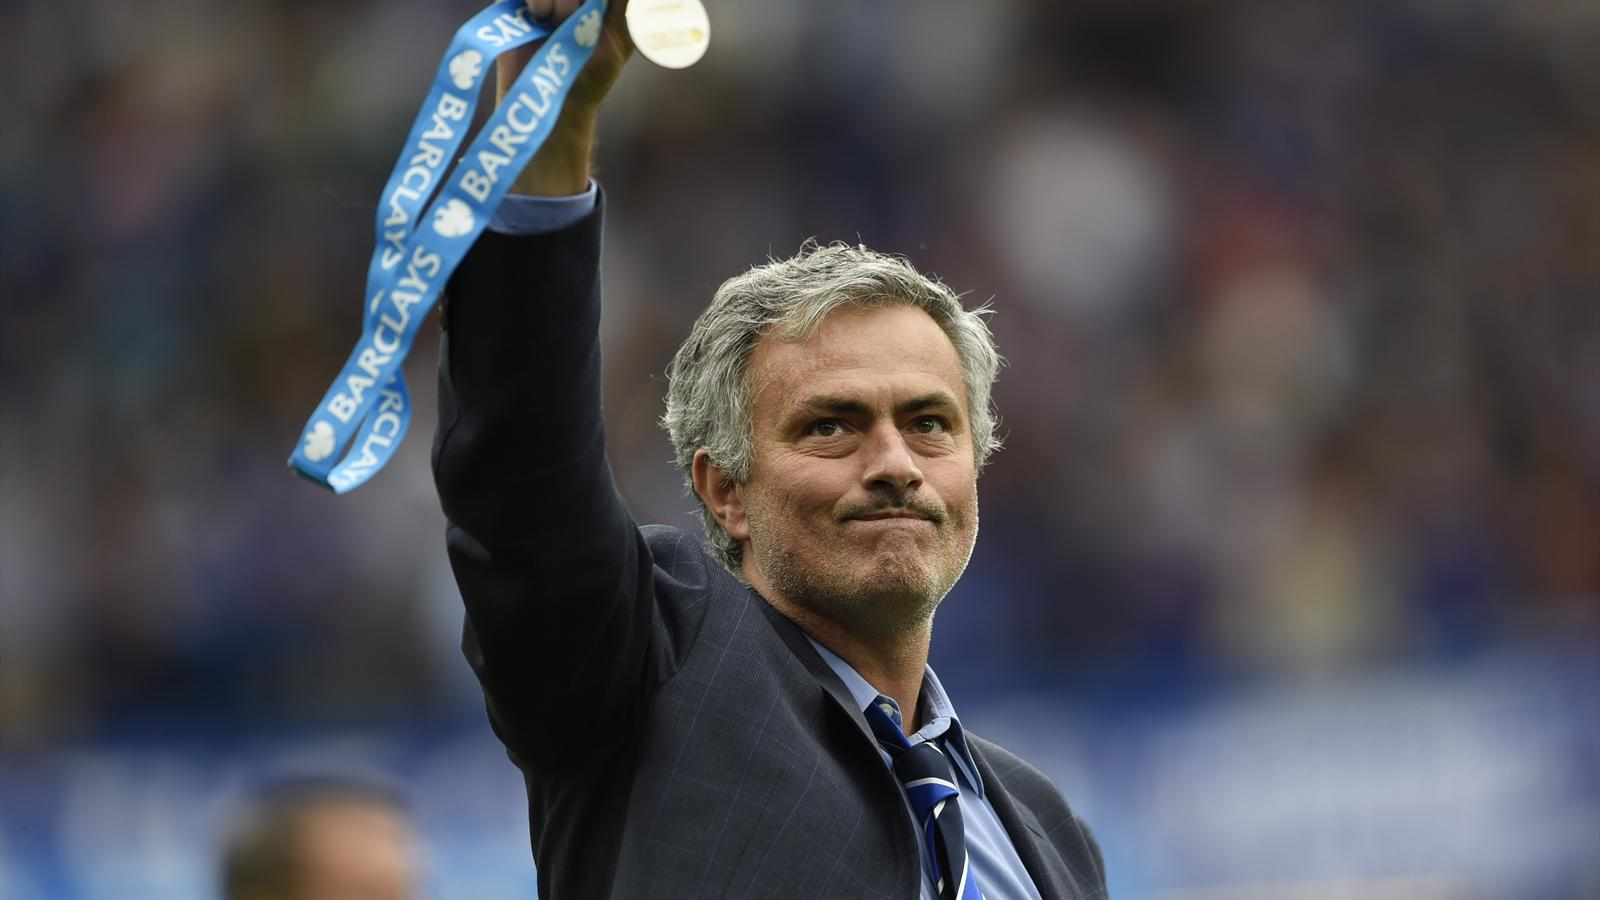 Jose Mourinho celebrates with his medal after winning the Premier League